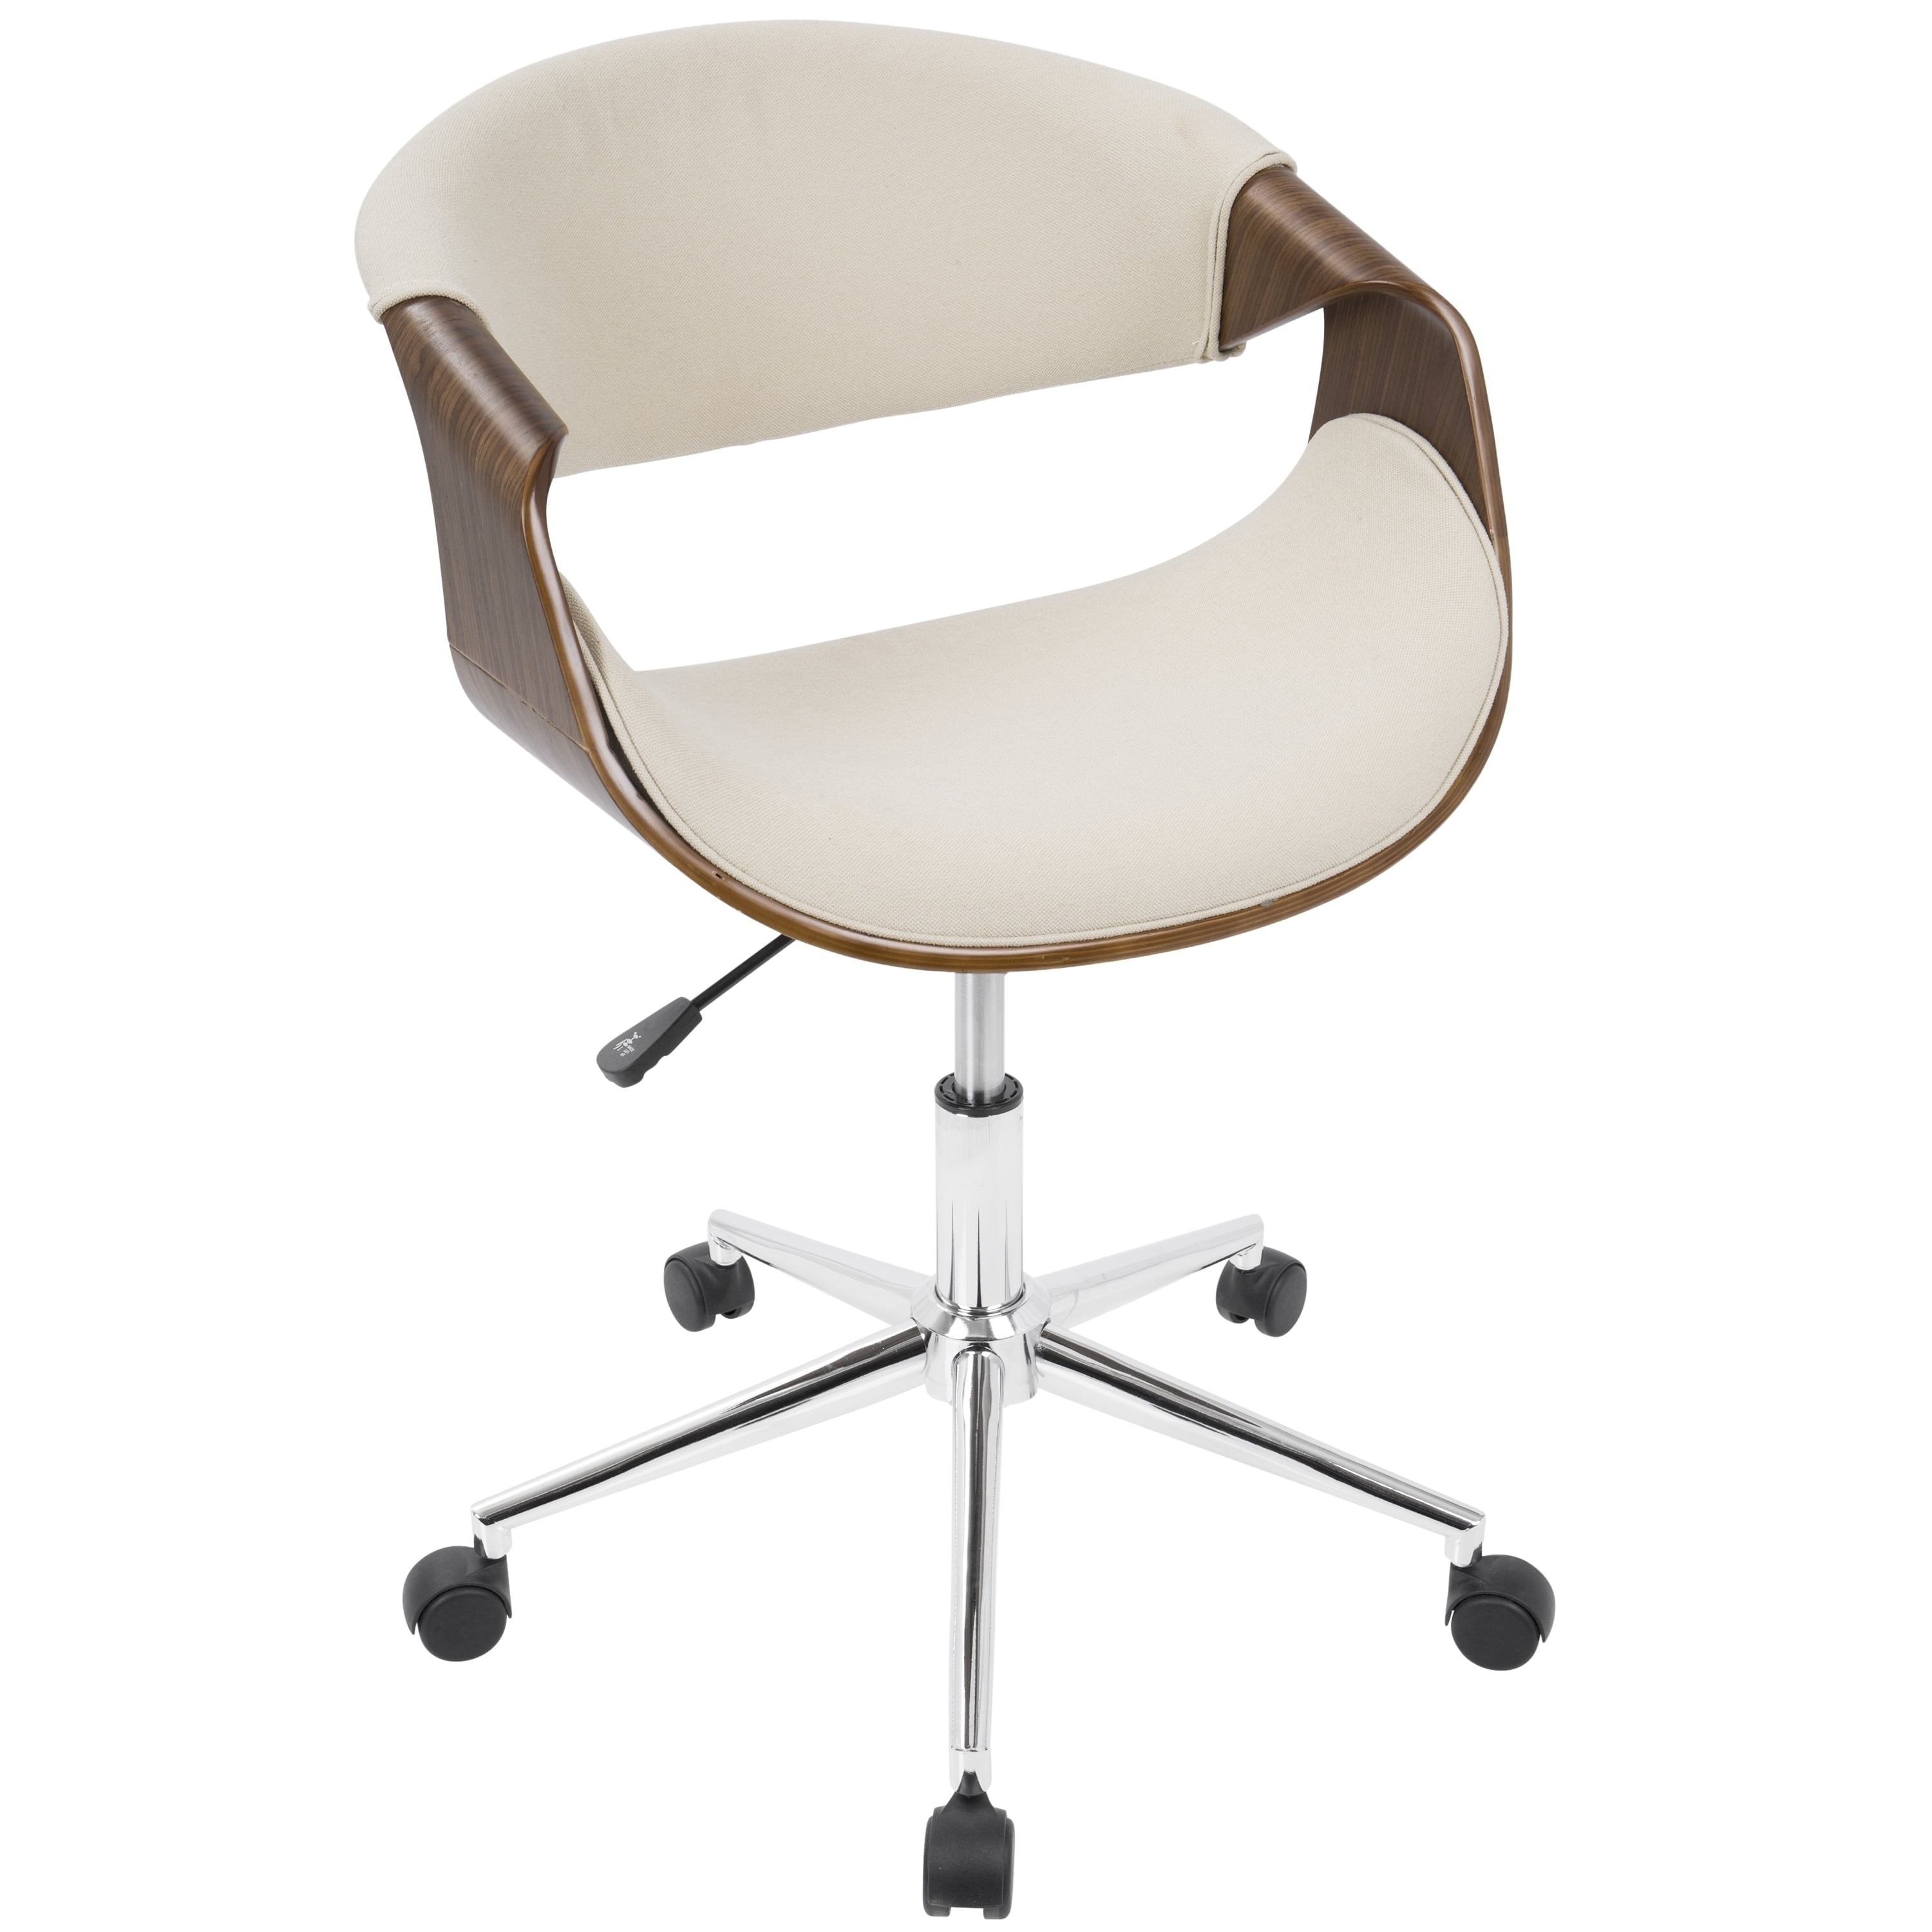 Curvo mid century modern office chair in walnut wood and woven fabric